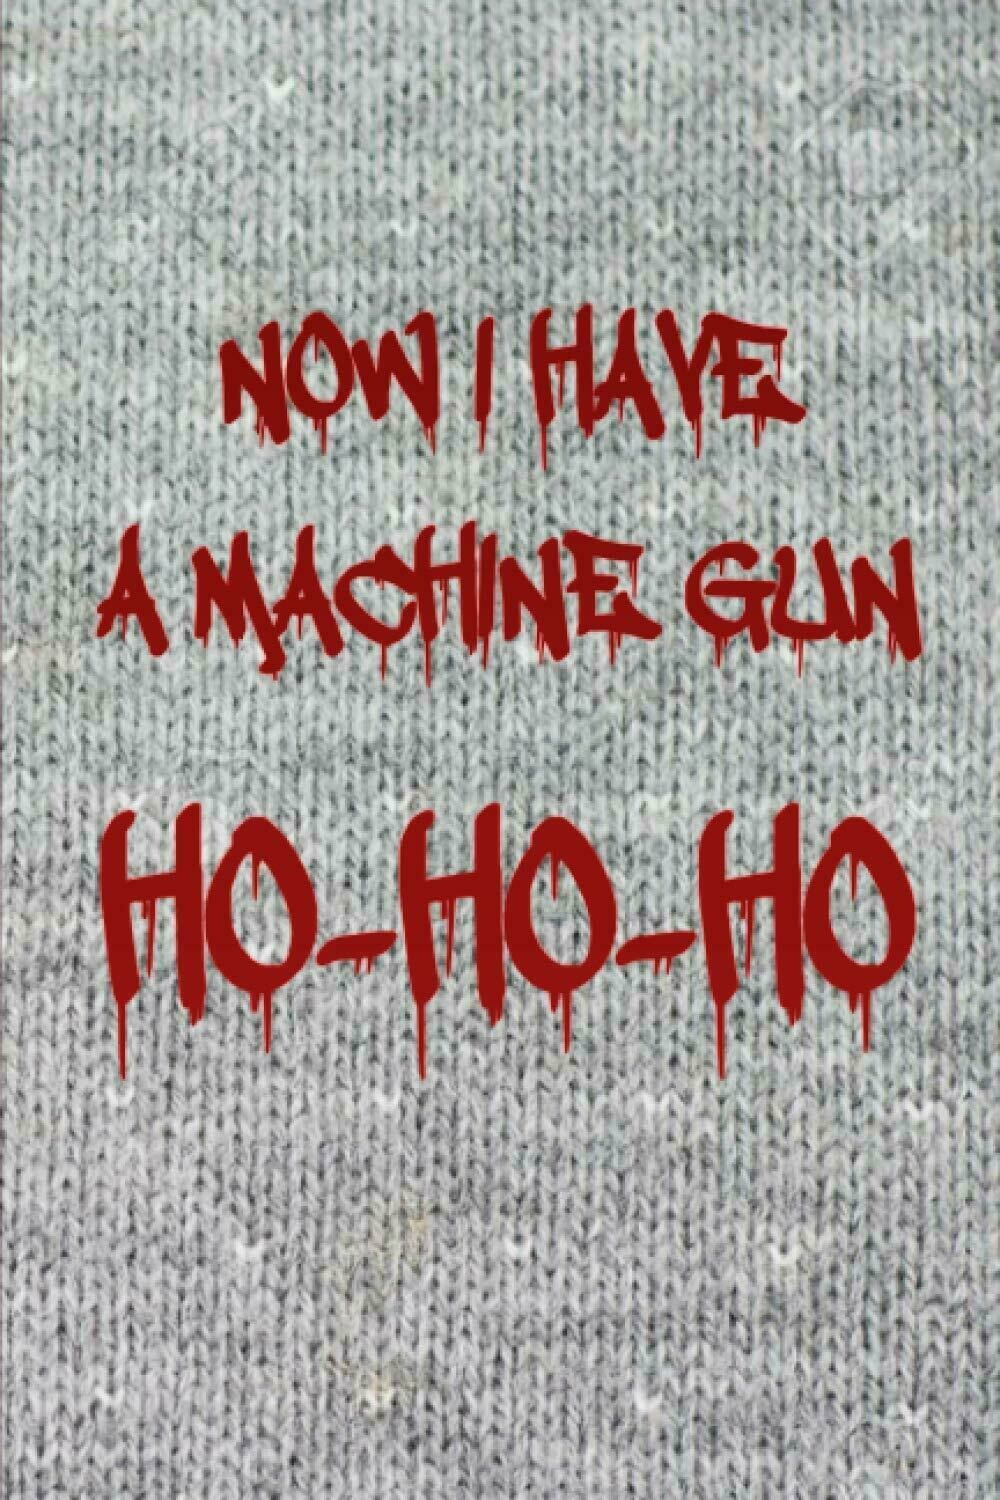 NOW I HAVE A MACHINE GUN HO HO HO (Die Hard) Luxury Lined Notebook - Journal Diary Writing Pad Paper Notepad Christmas Movie Prop